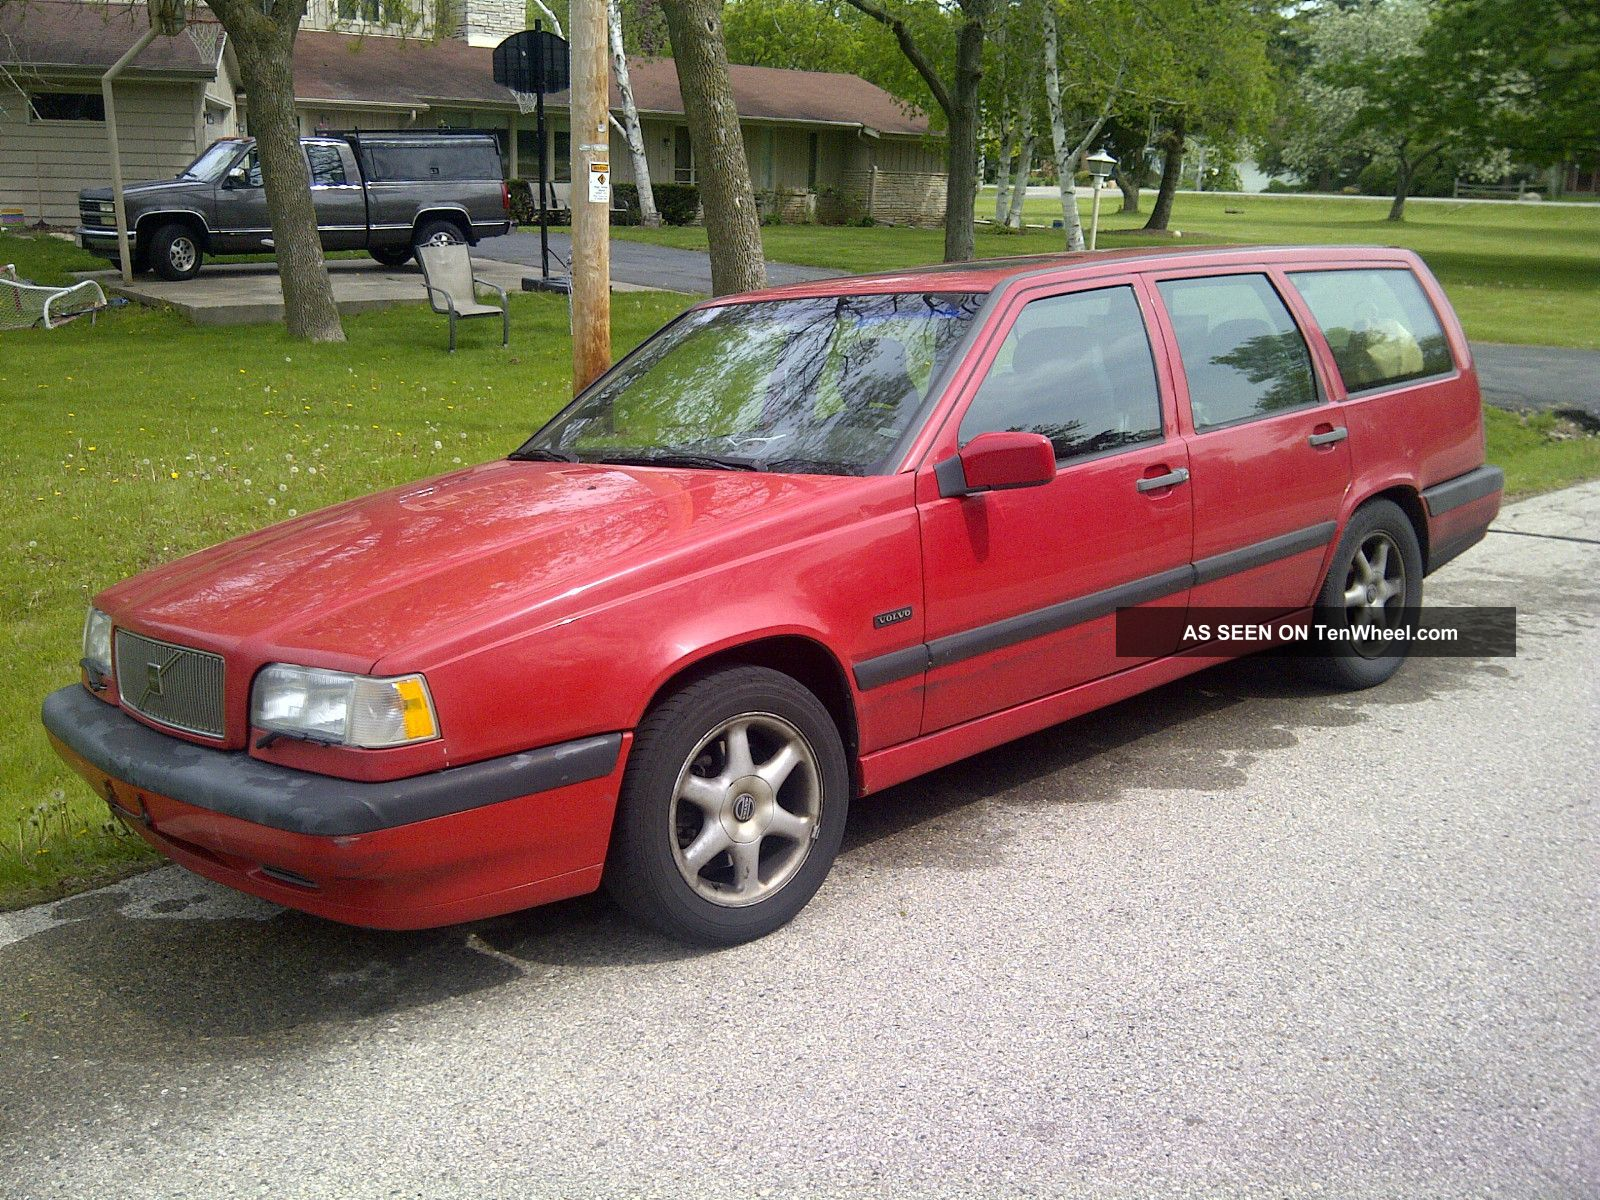 1997 Volvo 850 Glt Wagon 4 - Door 2.  4l - W / Oil Leak And Needs Suspension Work 850 photo